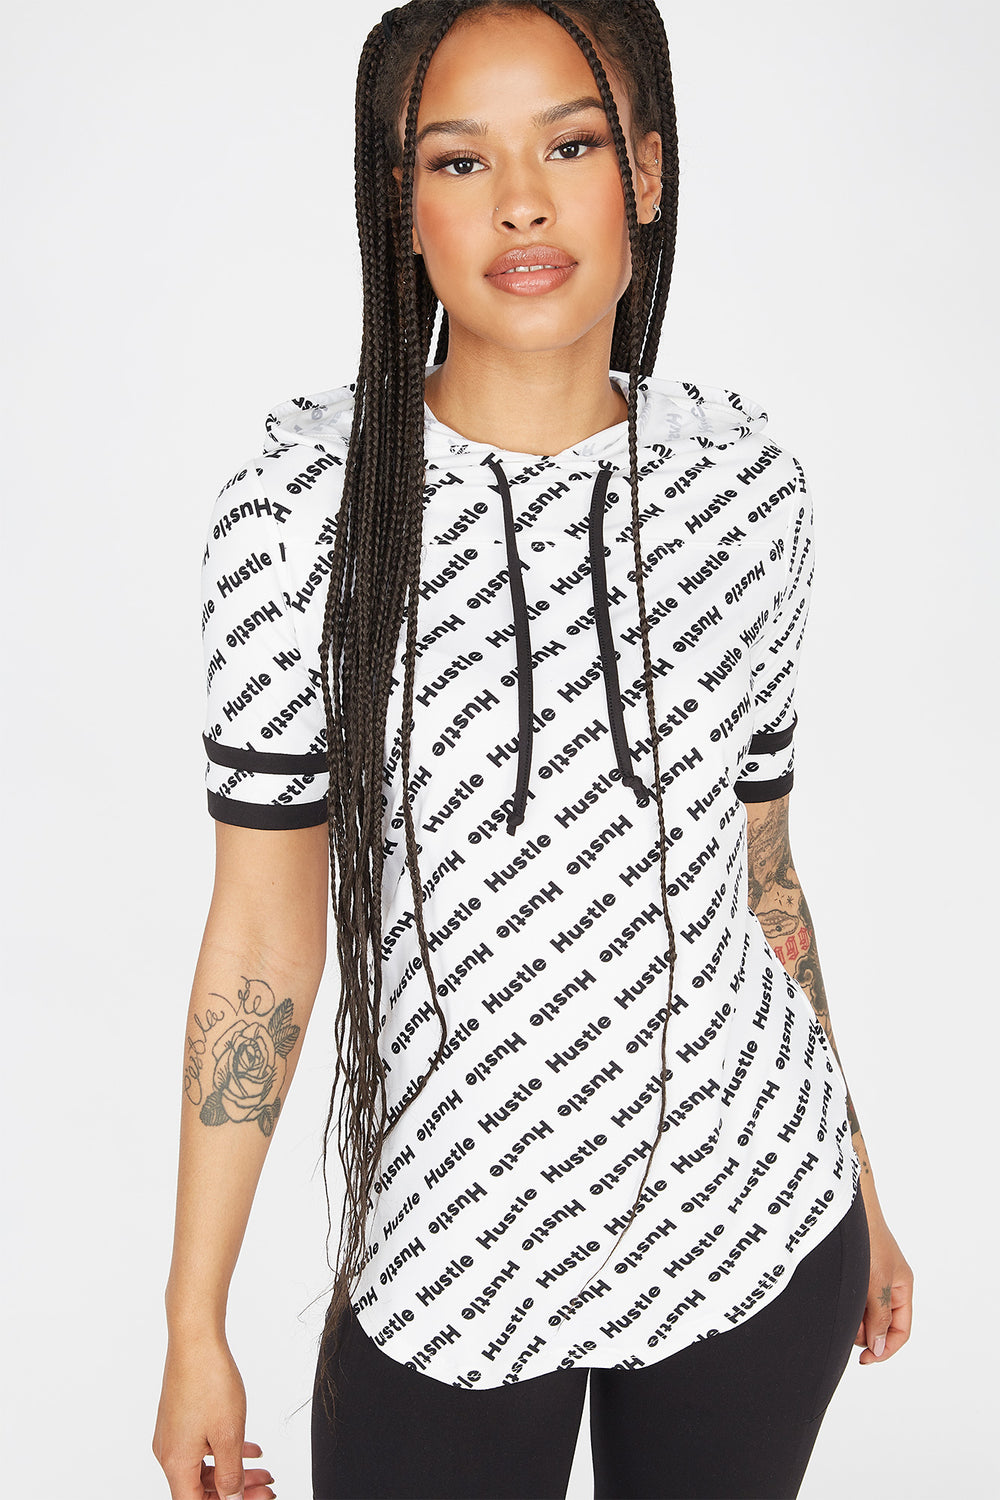 Soft Hustle Graphic Hooded T-Shirt White